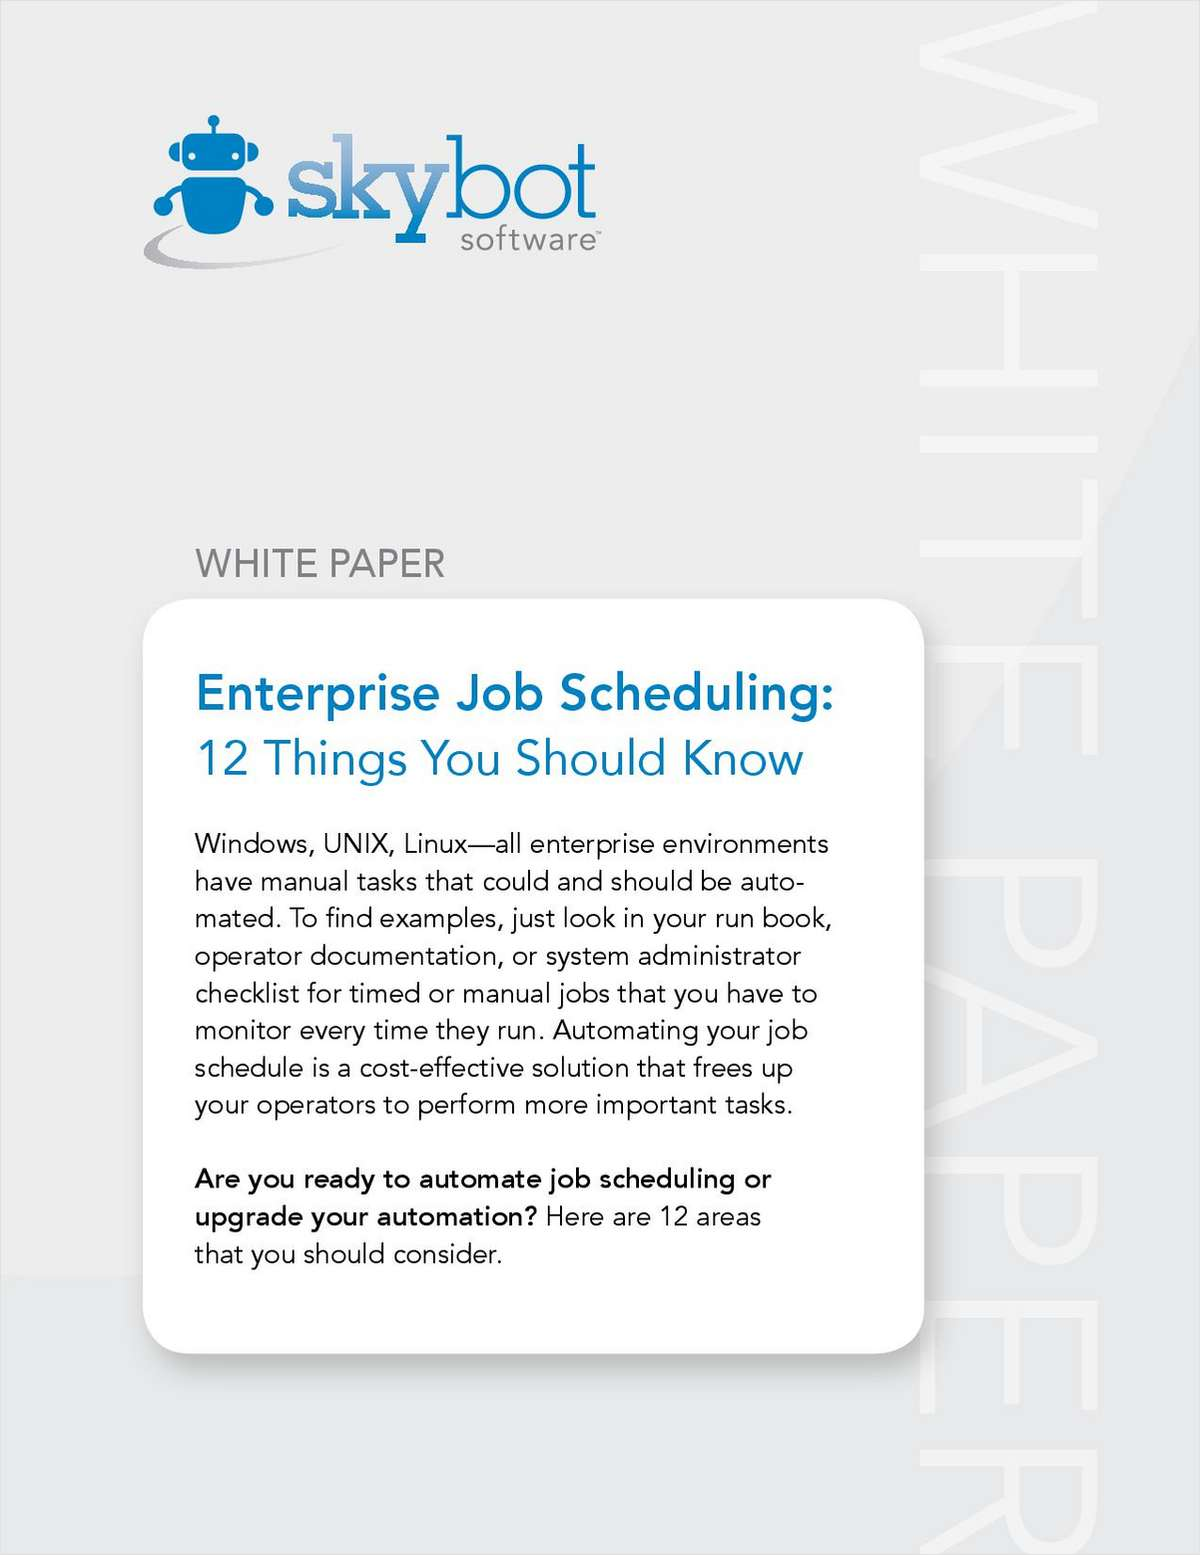 Enterprise Job Scheduling: 12 Things You Should Know